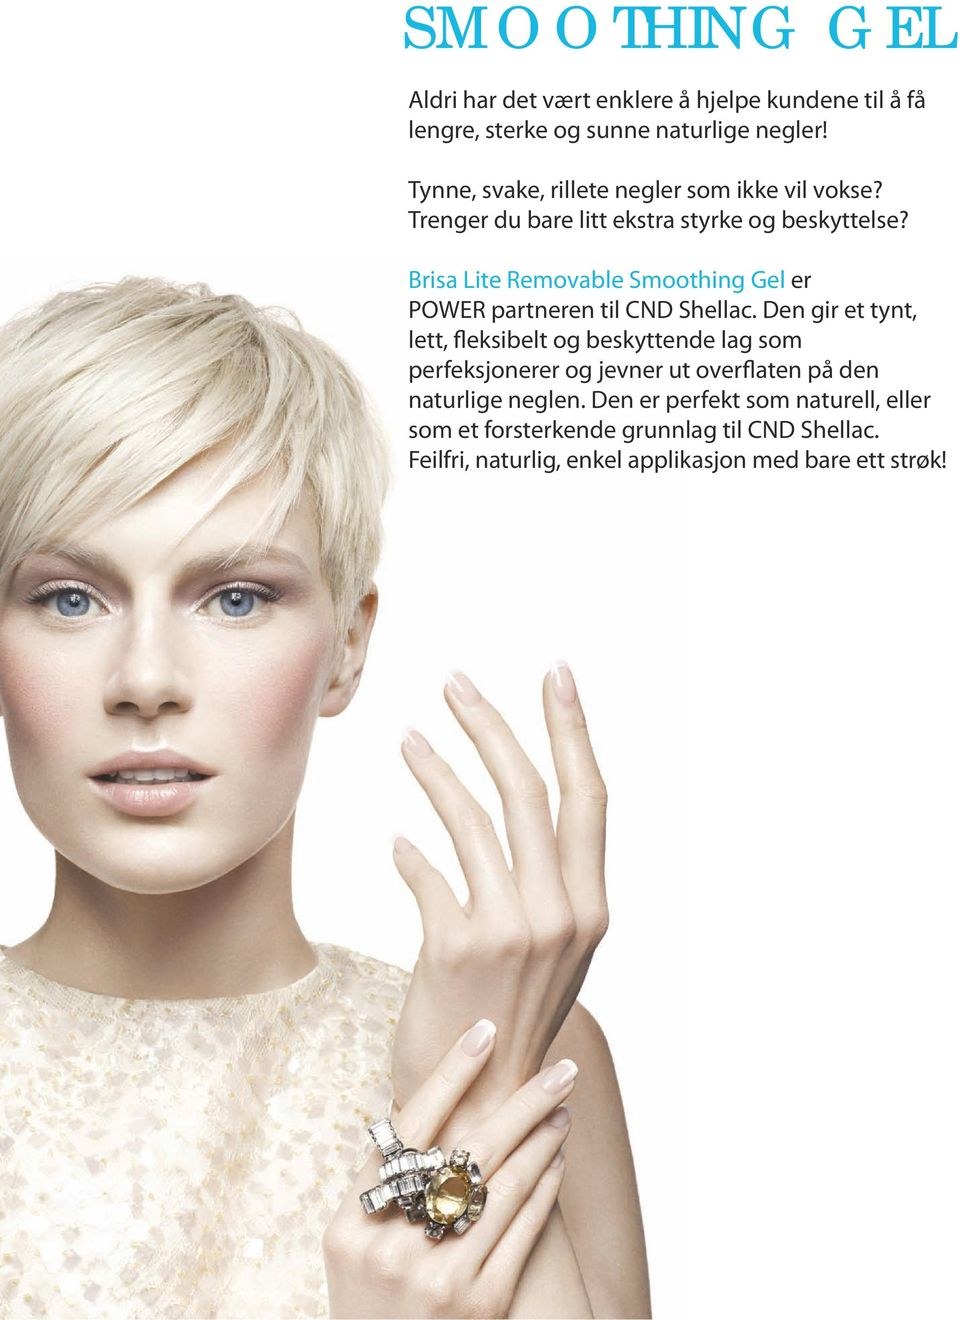 Brisa Lite Removable Smoothing Gel er POWER partneren til CND Shellac.